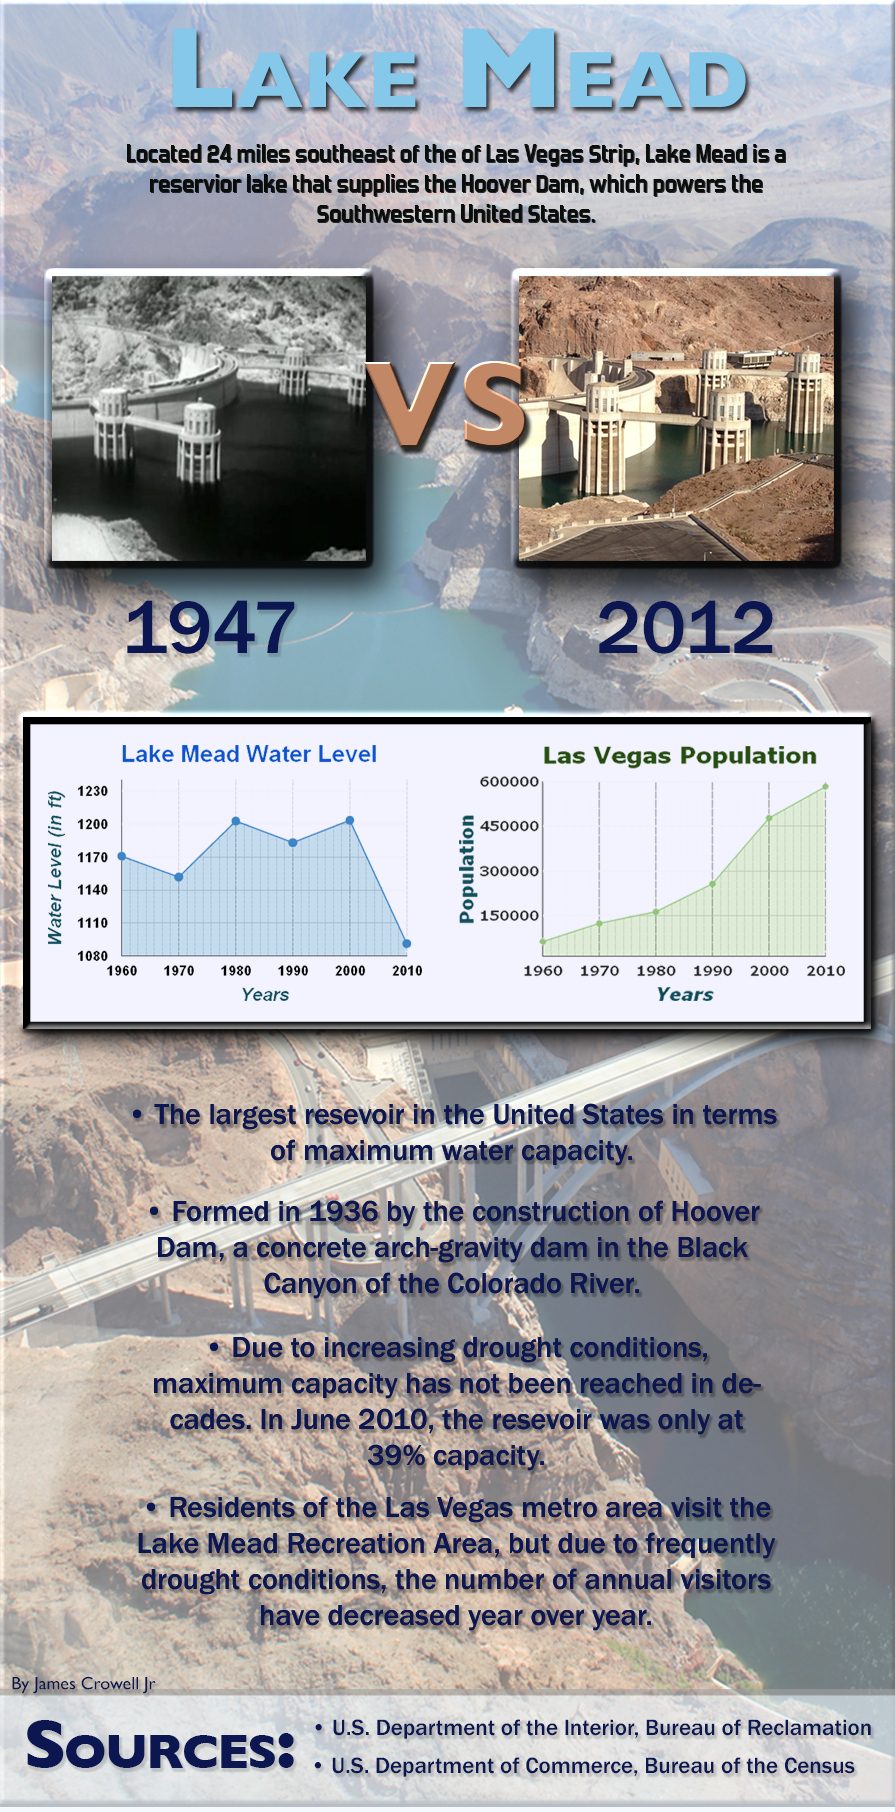 LakeMeadLevelComparison